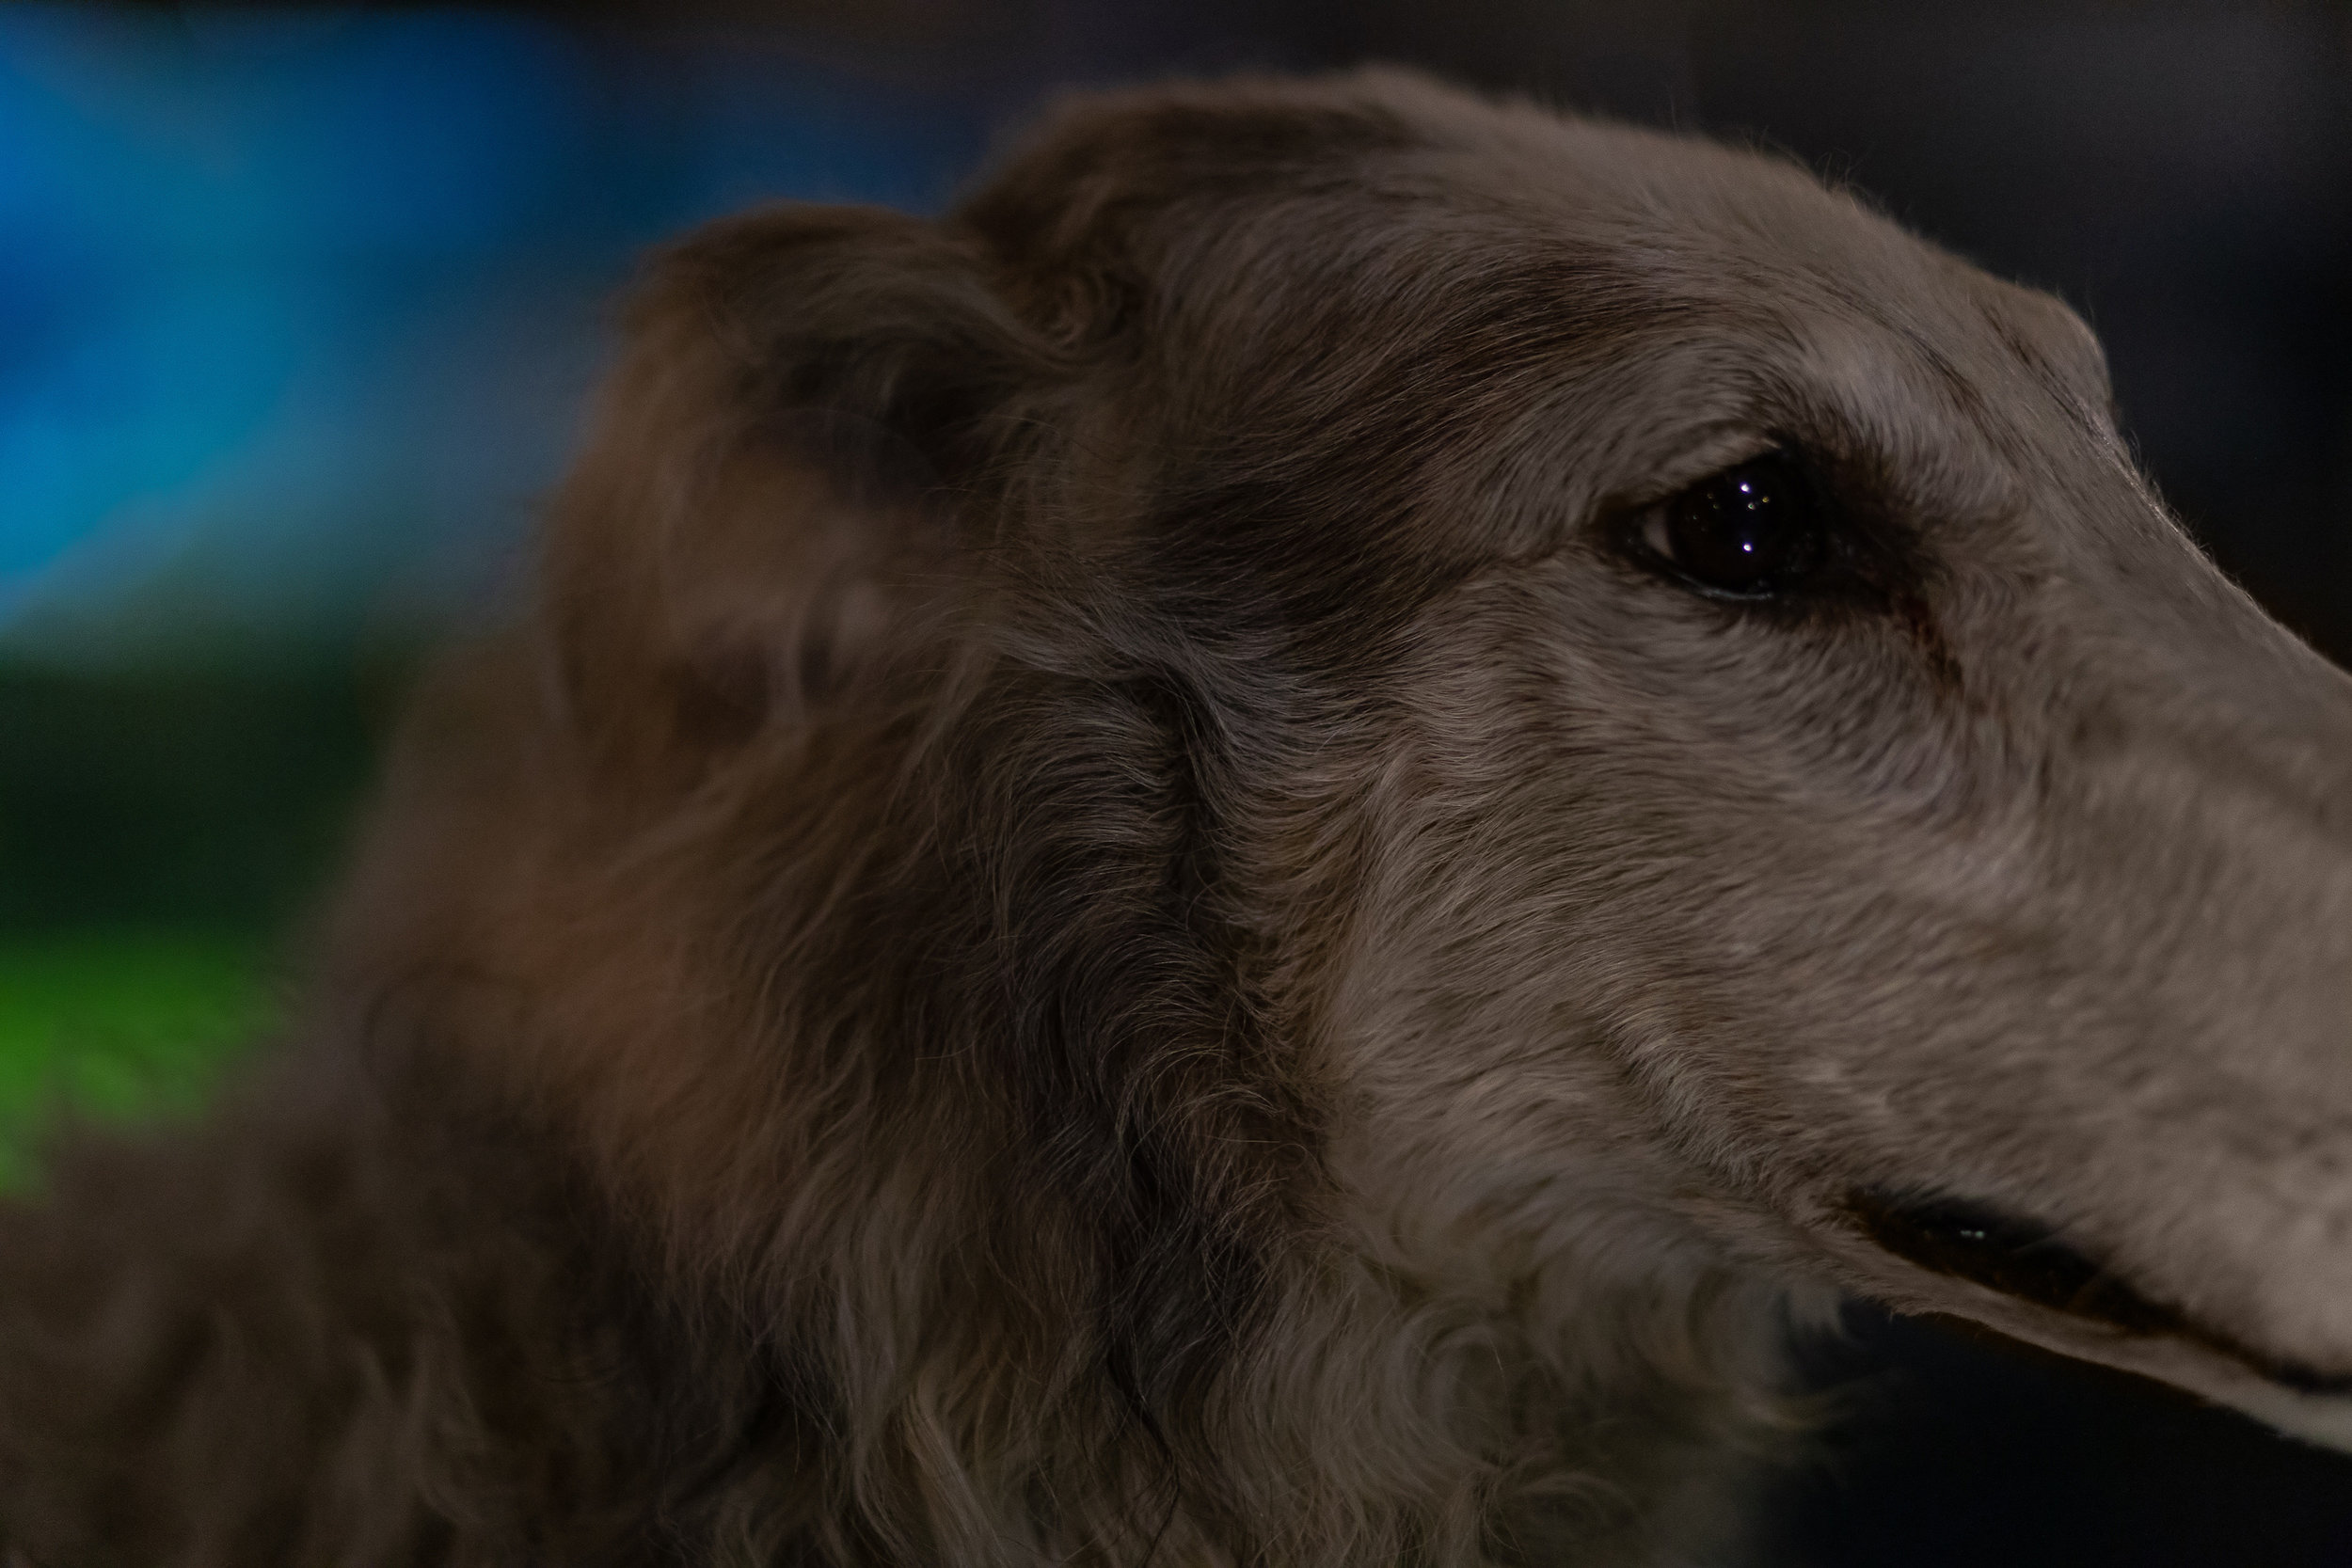 Close up of a common domestic dog at the Naturkundemuseum, Berlin.